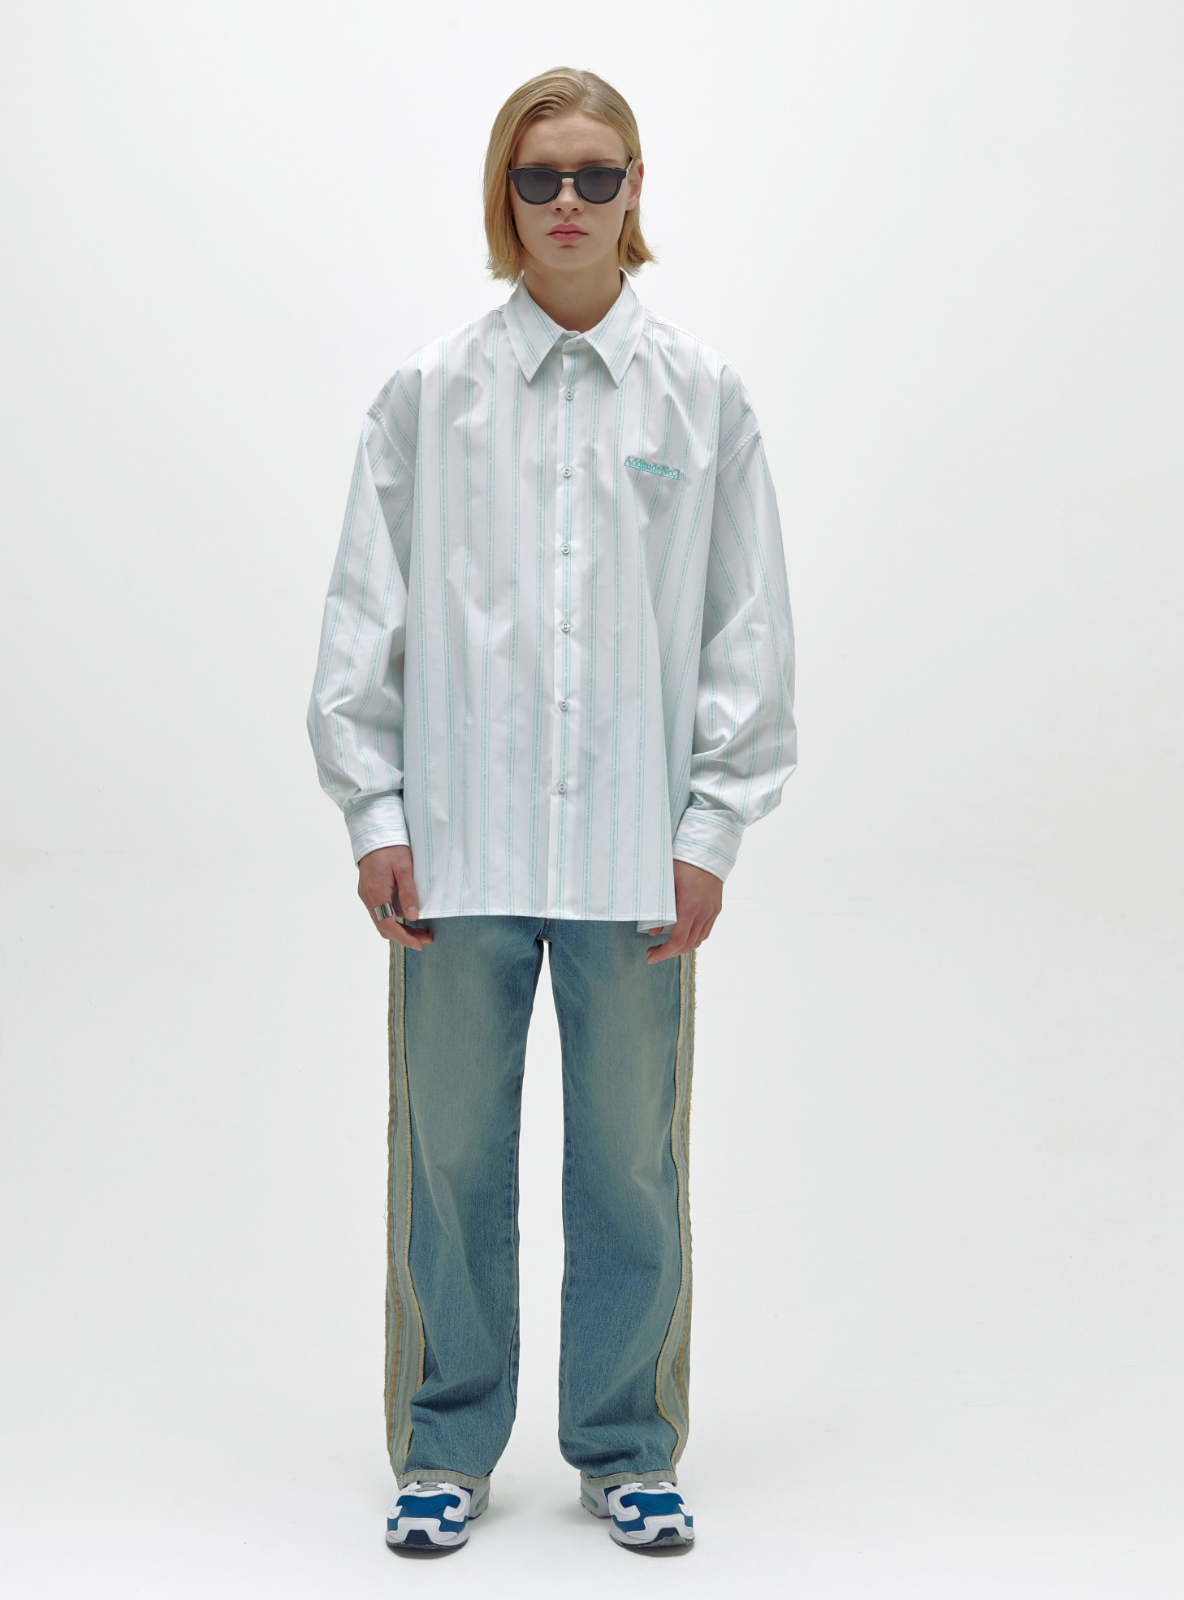 ADDITUDE No.1 AVANTGARDE SHIRT NEO MINT